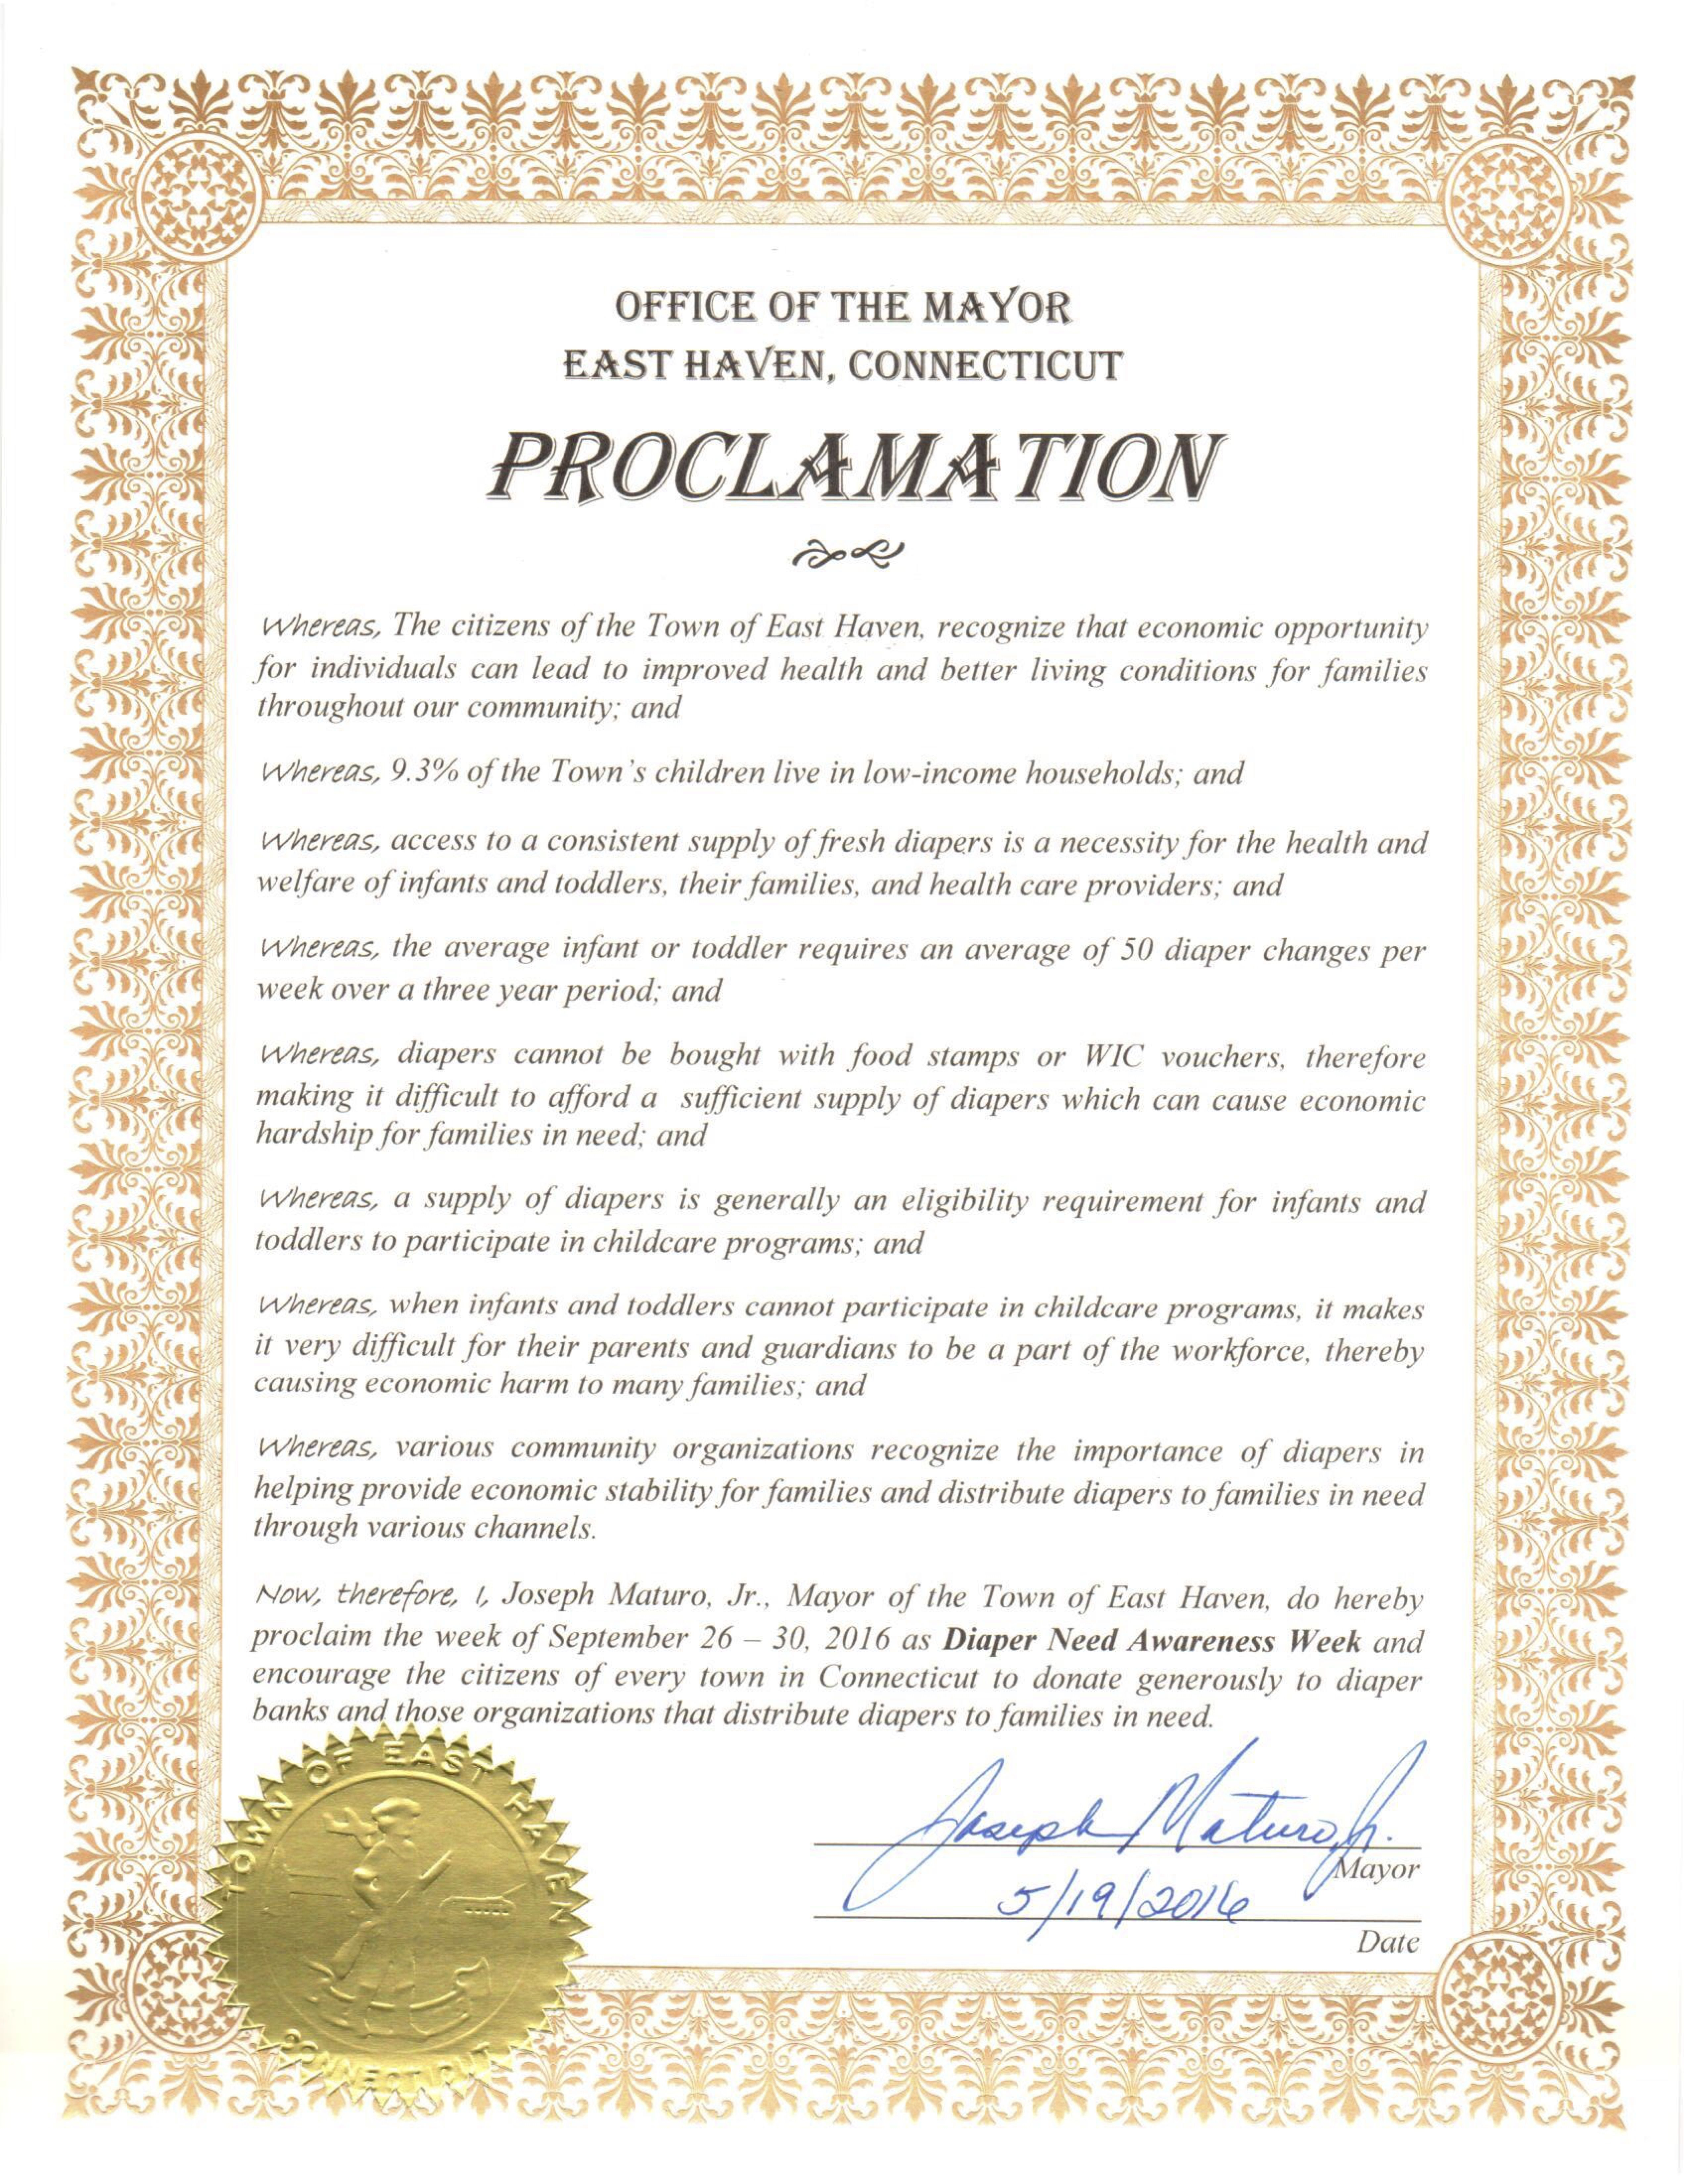 East Haven, CT - Mayoral proclamation recognizing Diaper Need Awareness Week (Sept. 26 - Oct. 2, 2016) #DiaperNeed www.diaperneed.org